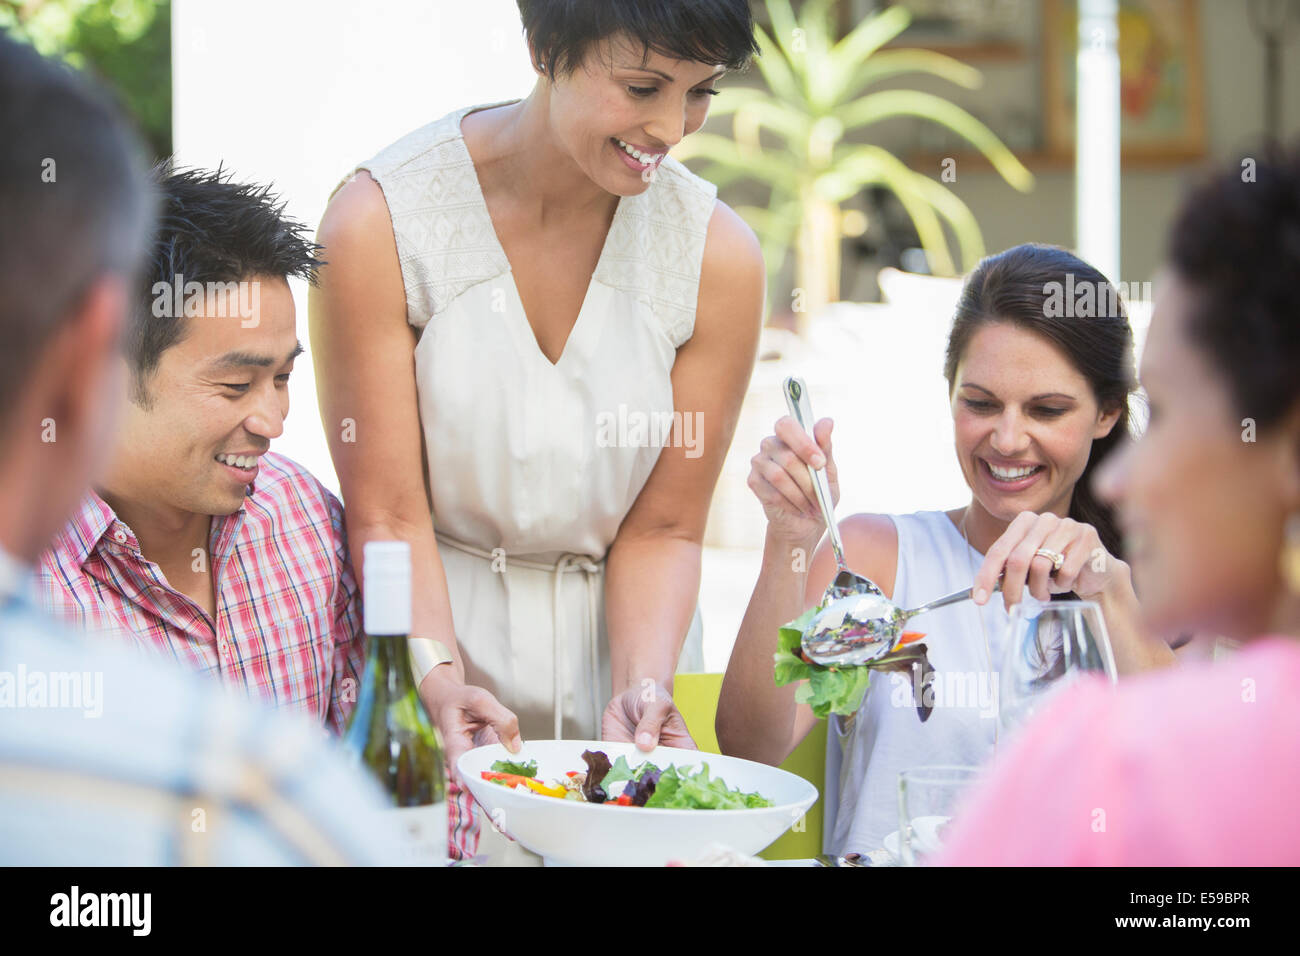 Femme amis à table outdoors Photo Stock